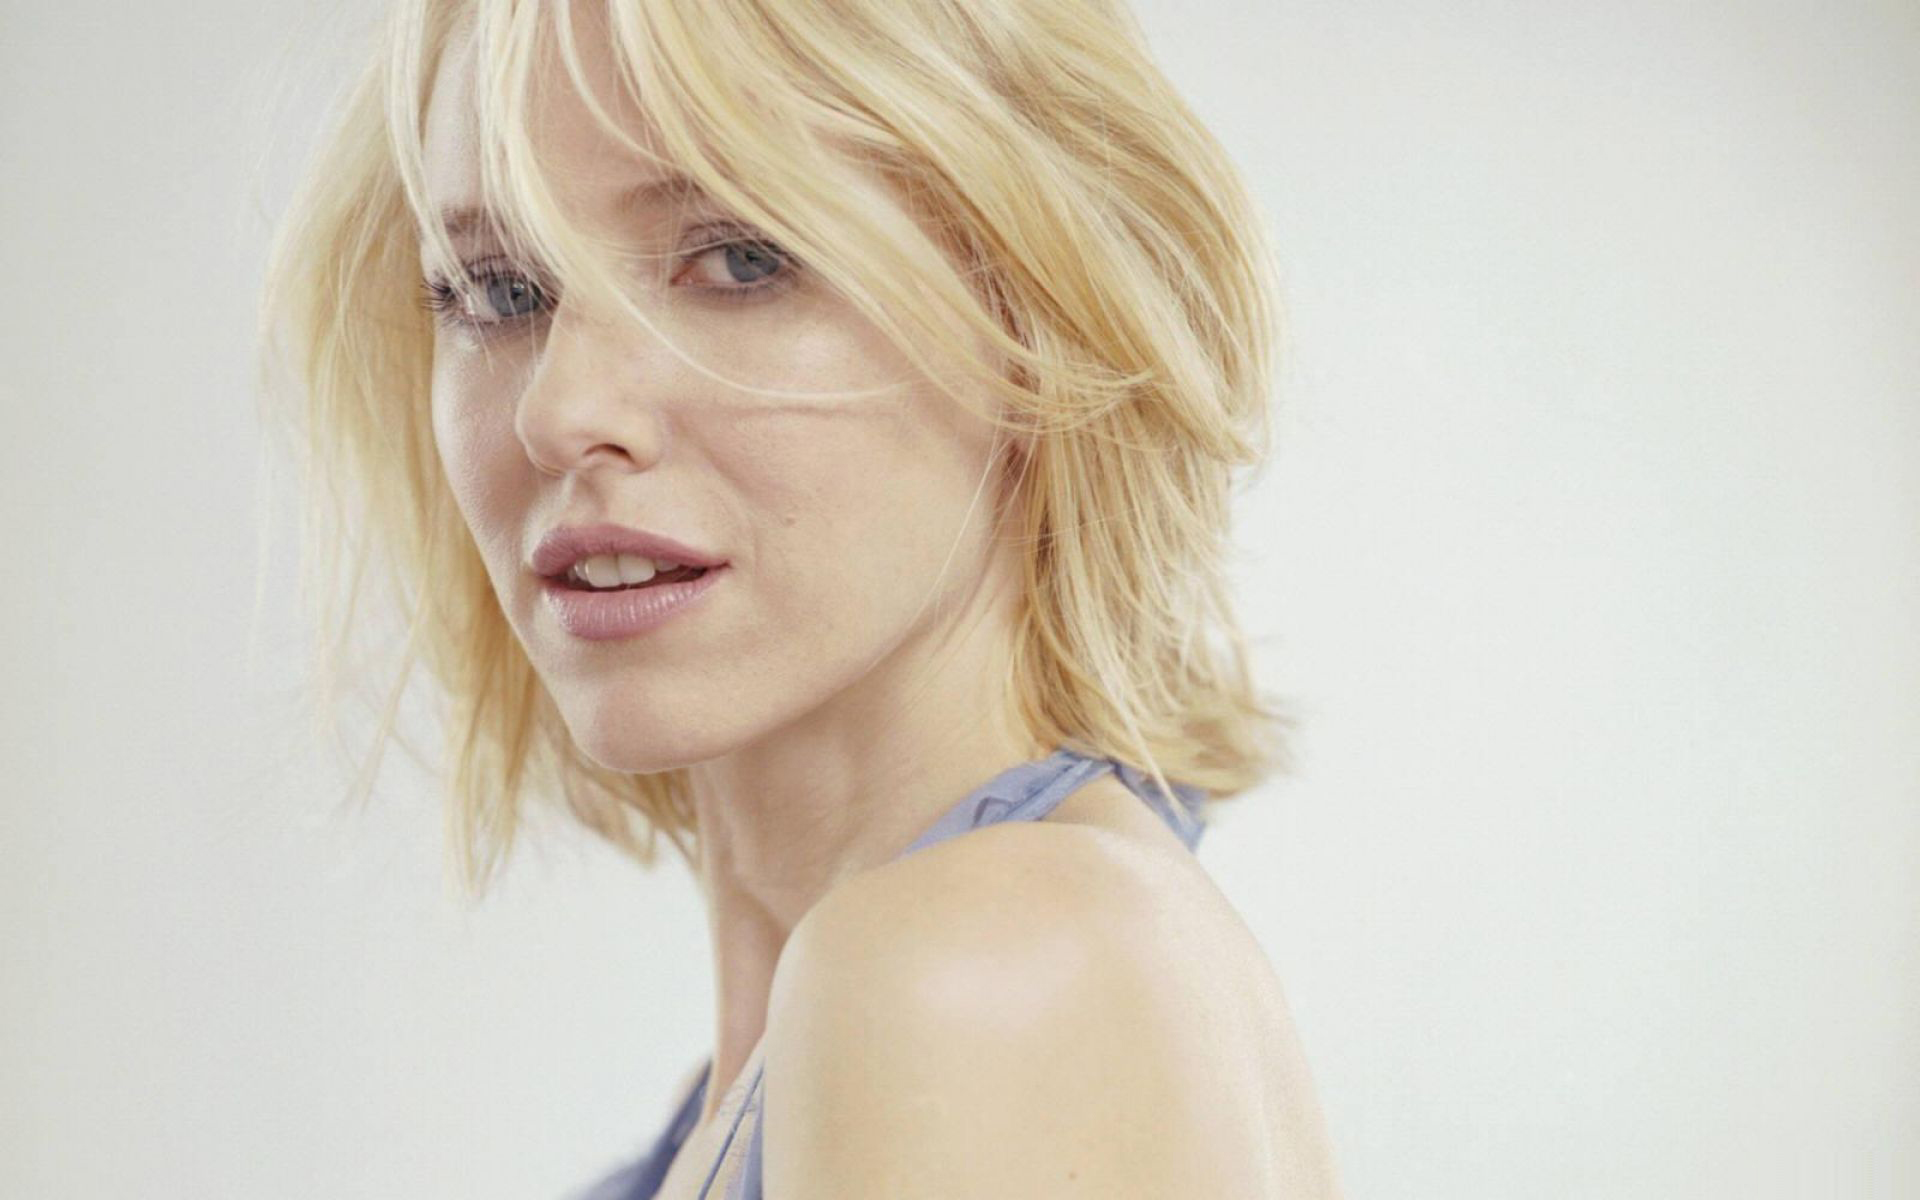 Naomi Watts Wallpapers High Resolution and Quality Download 1920x1200